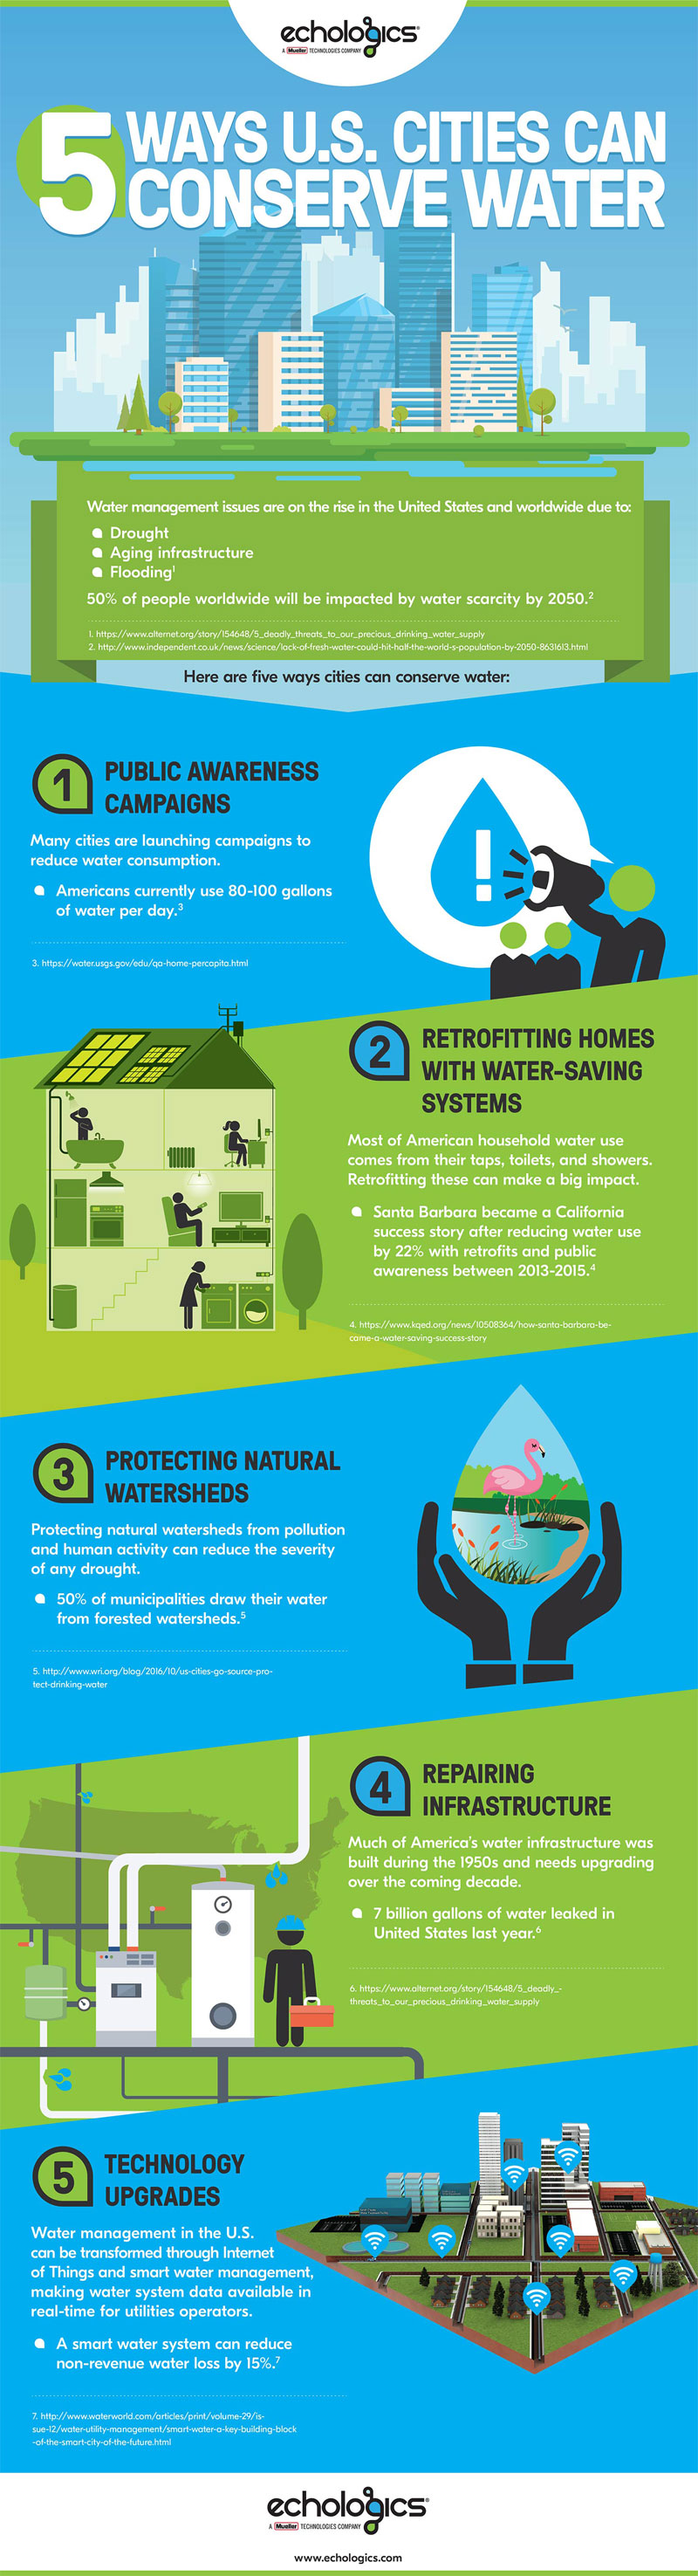 An infographic about water conservation